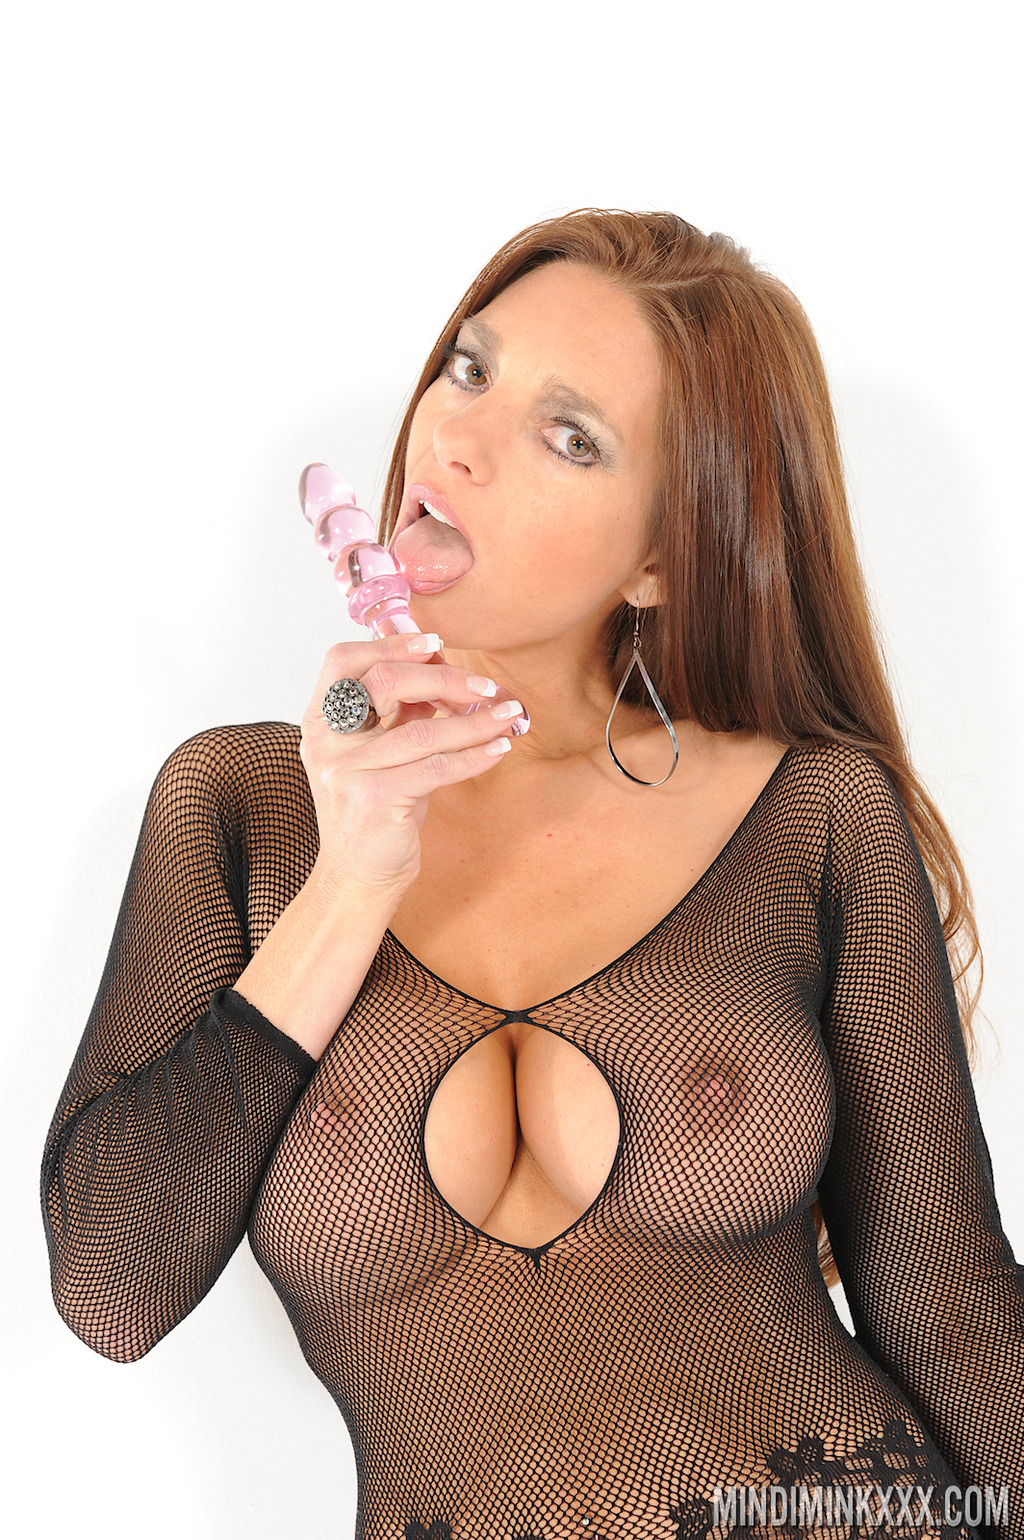 PHOTO | 05 - SULTRY AS FUCK! Mindi Mink is a Straight up Cock Tease, Whips out her Glass Dildo